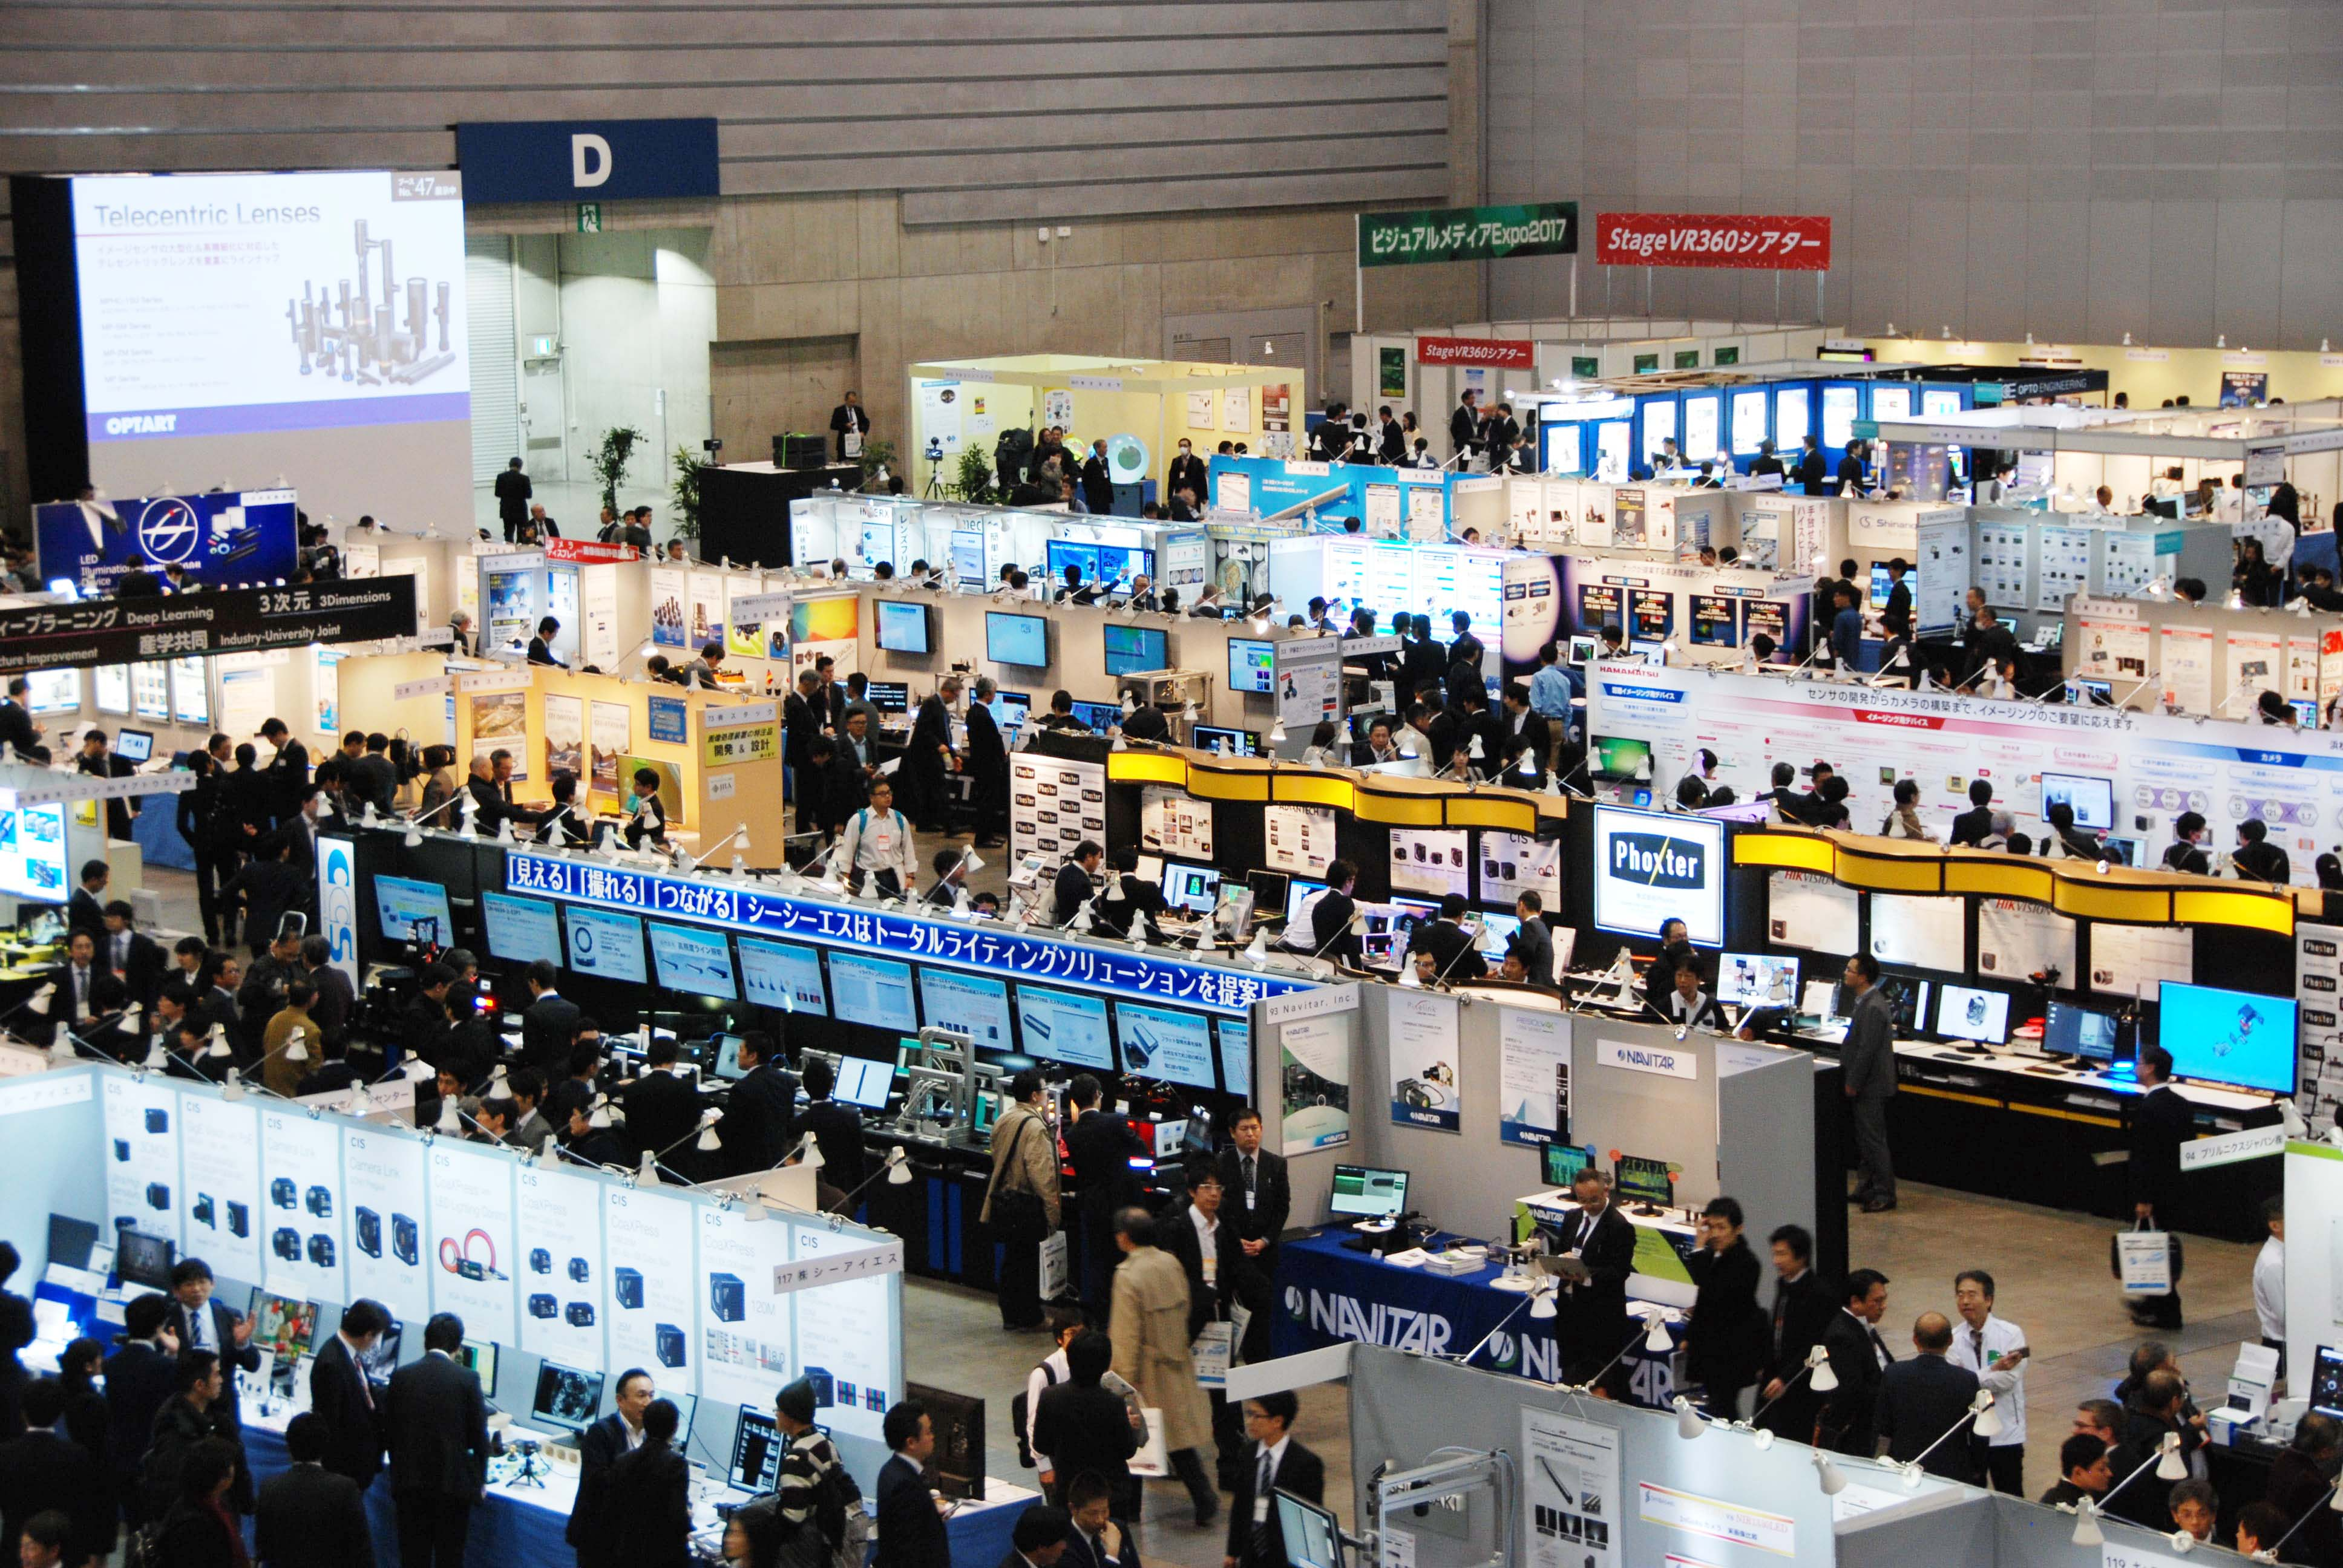 INTERNATIONAL TECHNICAL EXHIBITION ON IMAGE TECHNOLOGY AND EQUIPMENT 2019/VISUAL MEDIA EXPO 2019-1